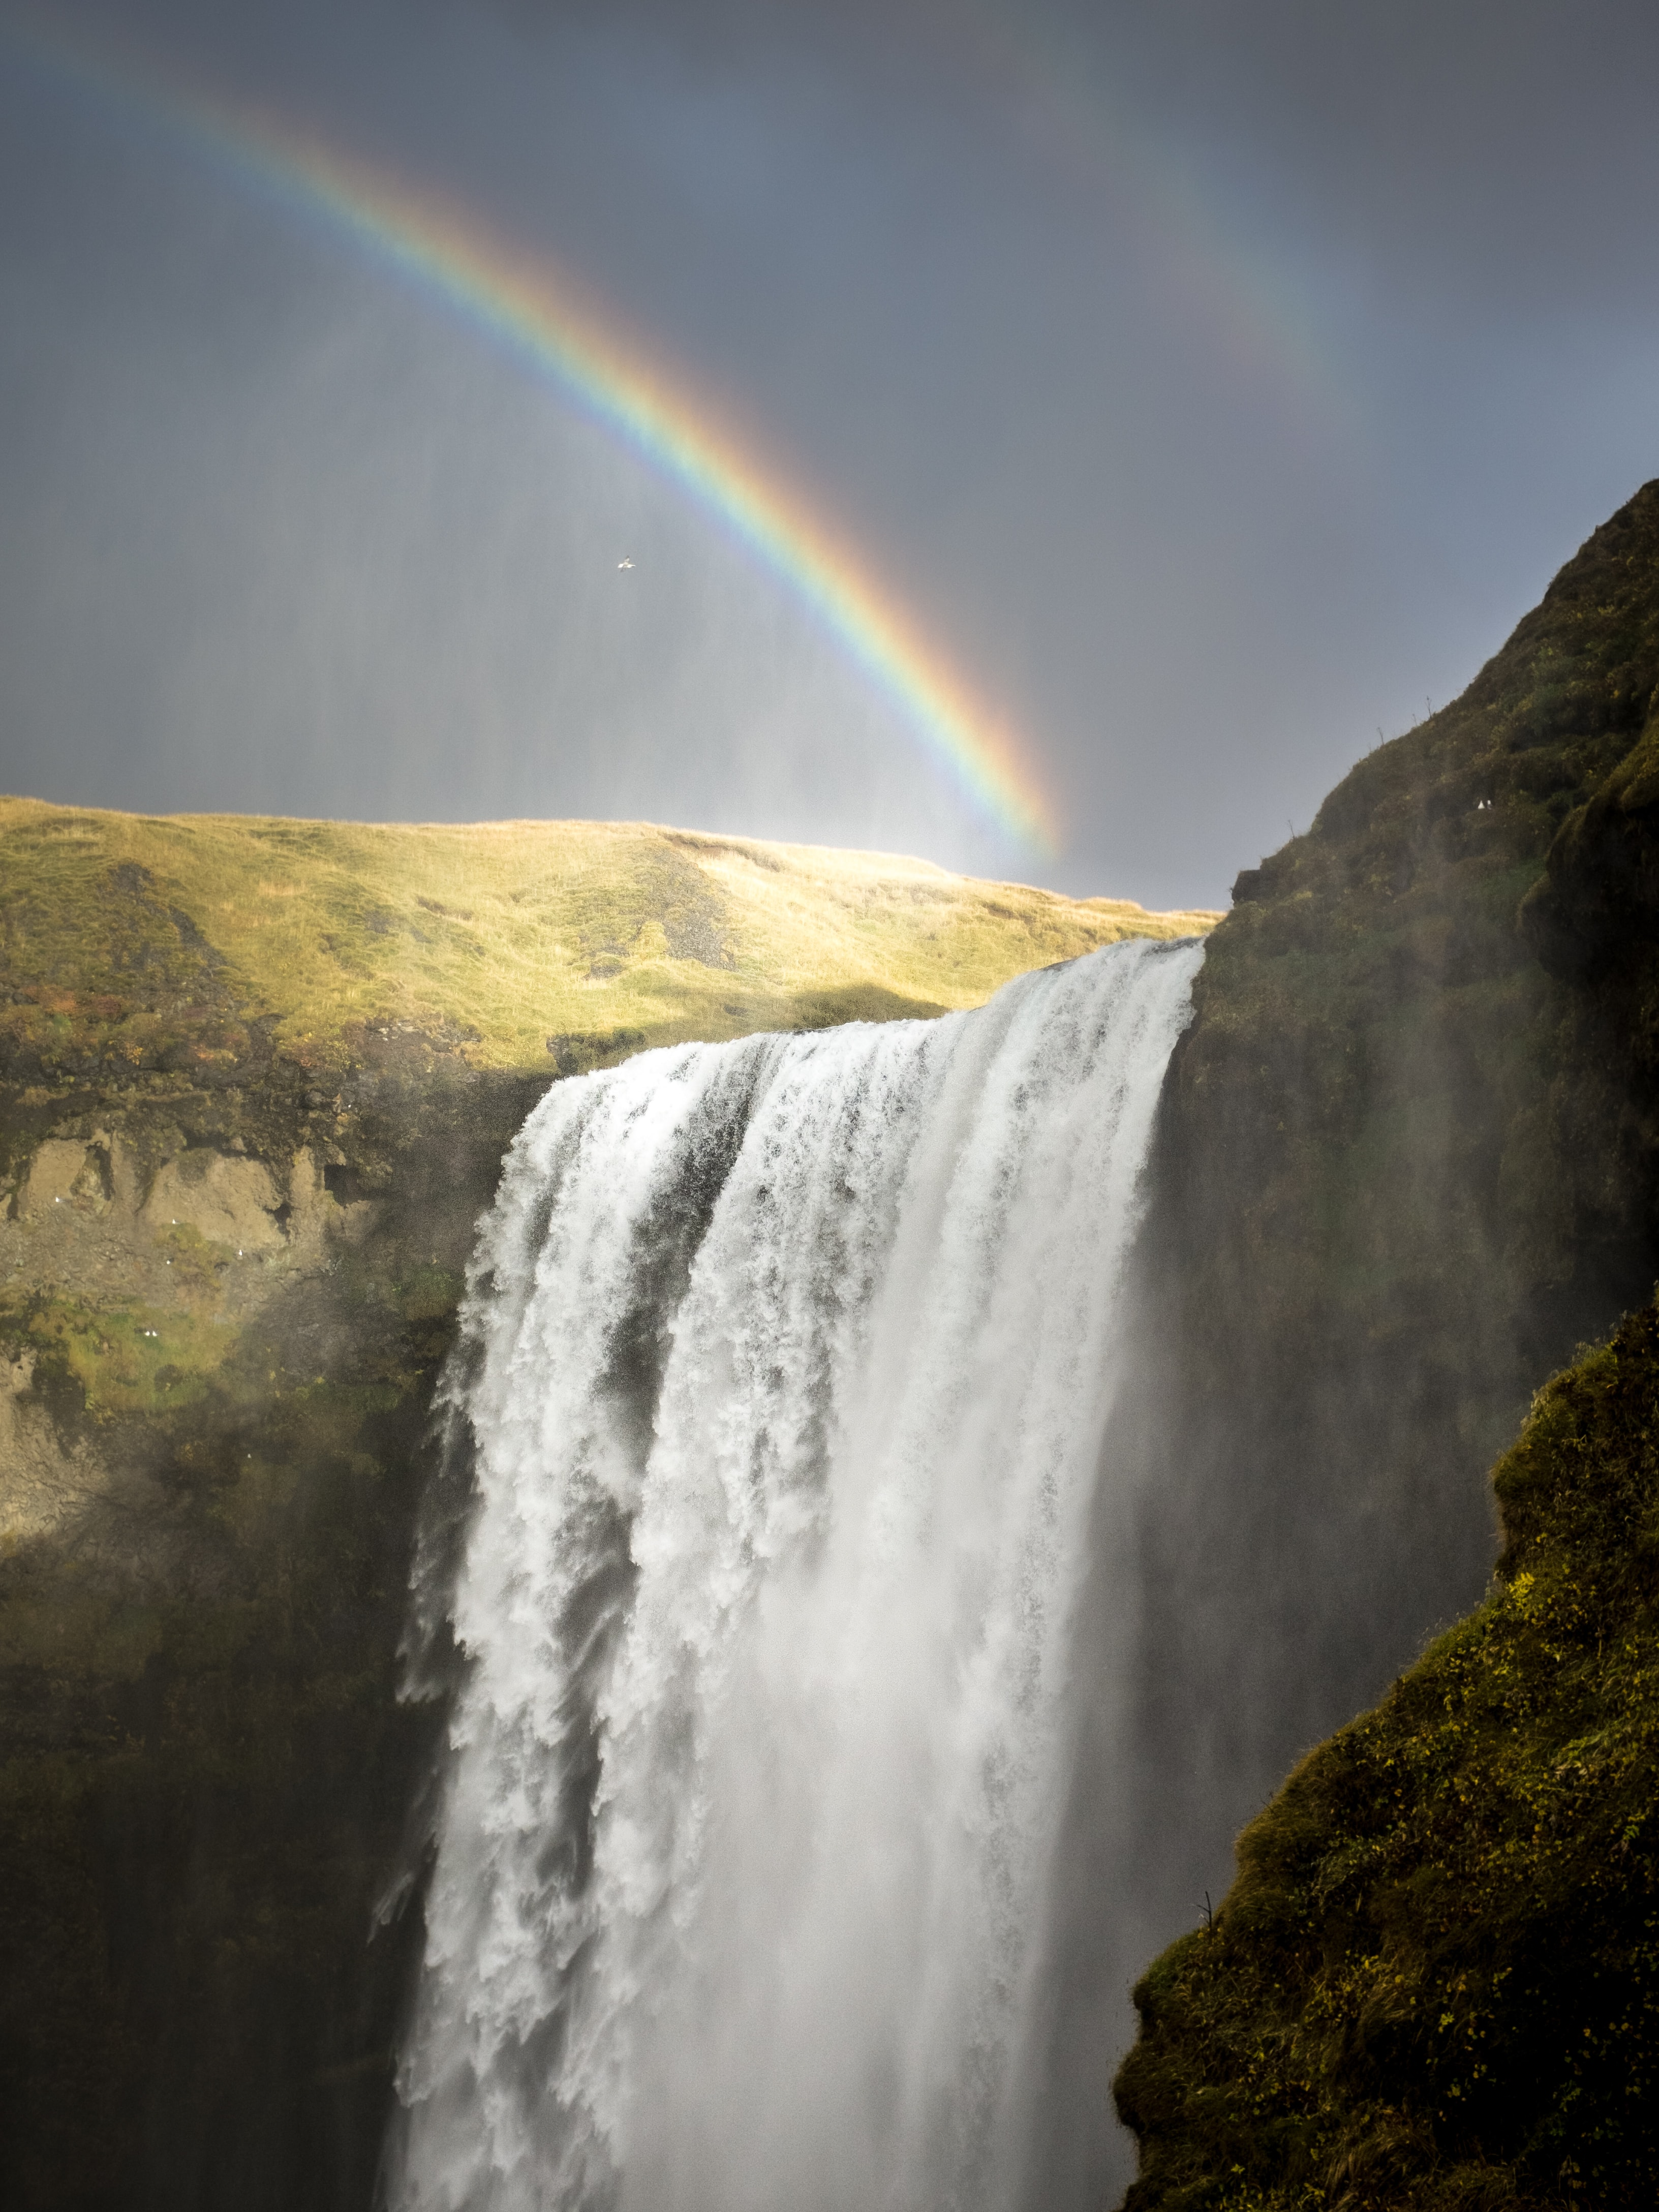 A rainbow over a waterfall pouring down from mossy rocks in Skógafoss